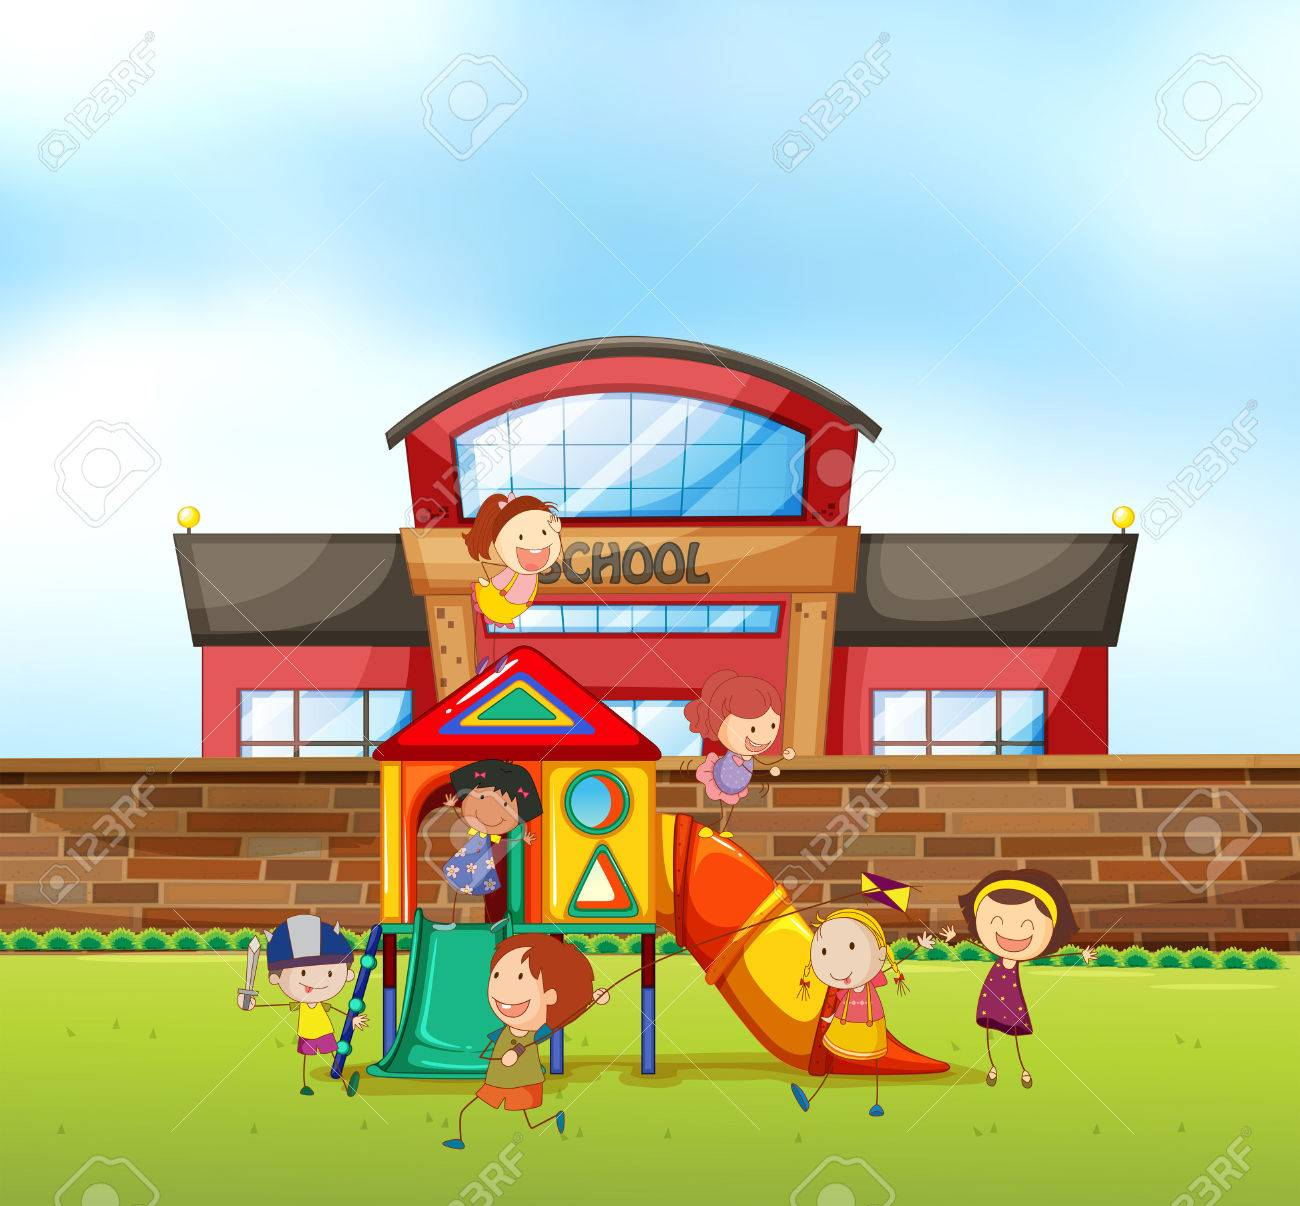 children playing at school playground illustration royalty free